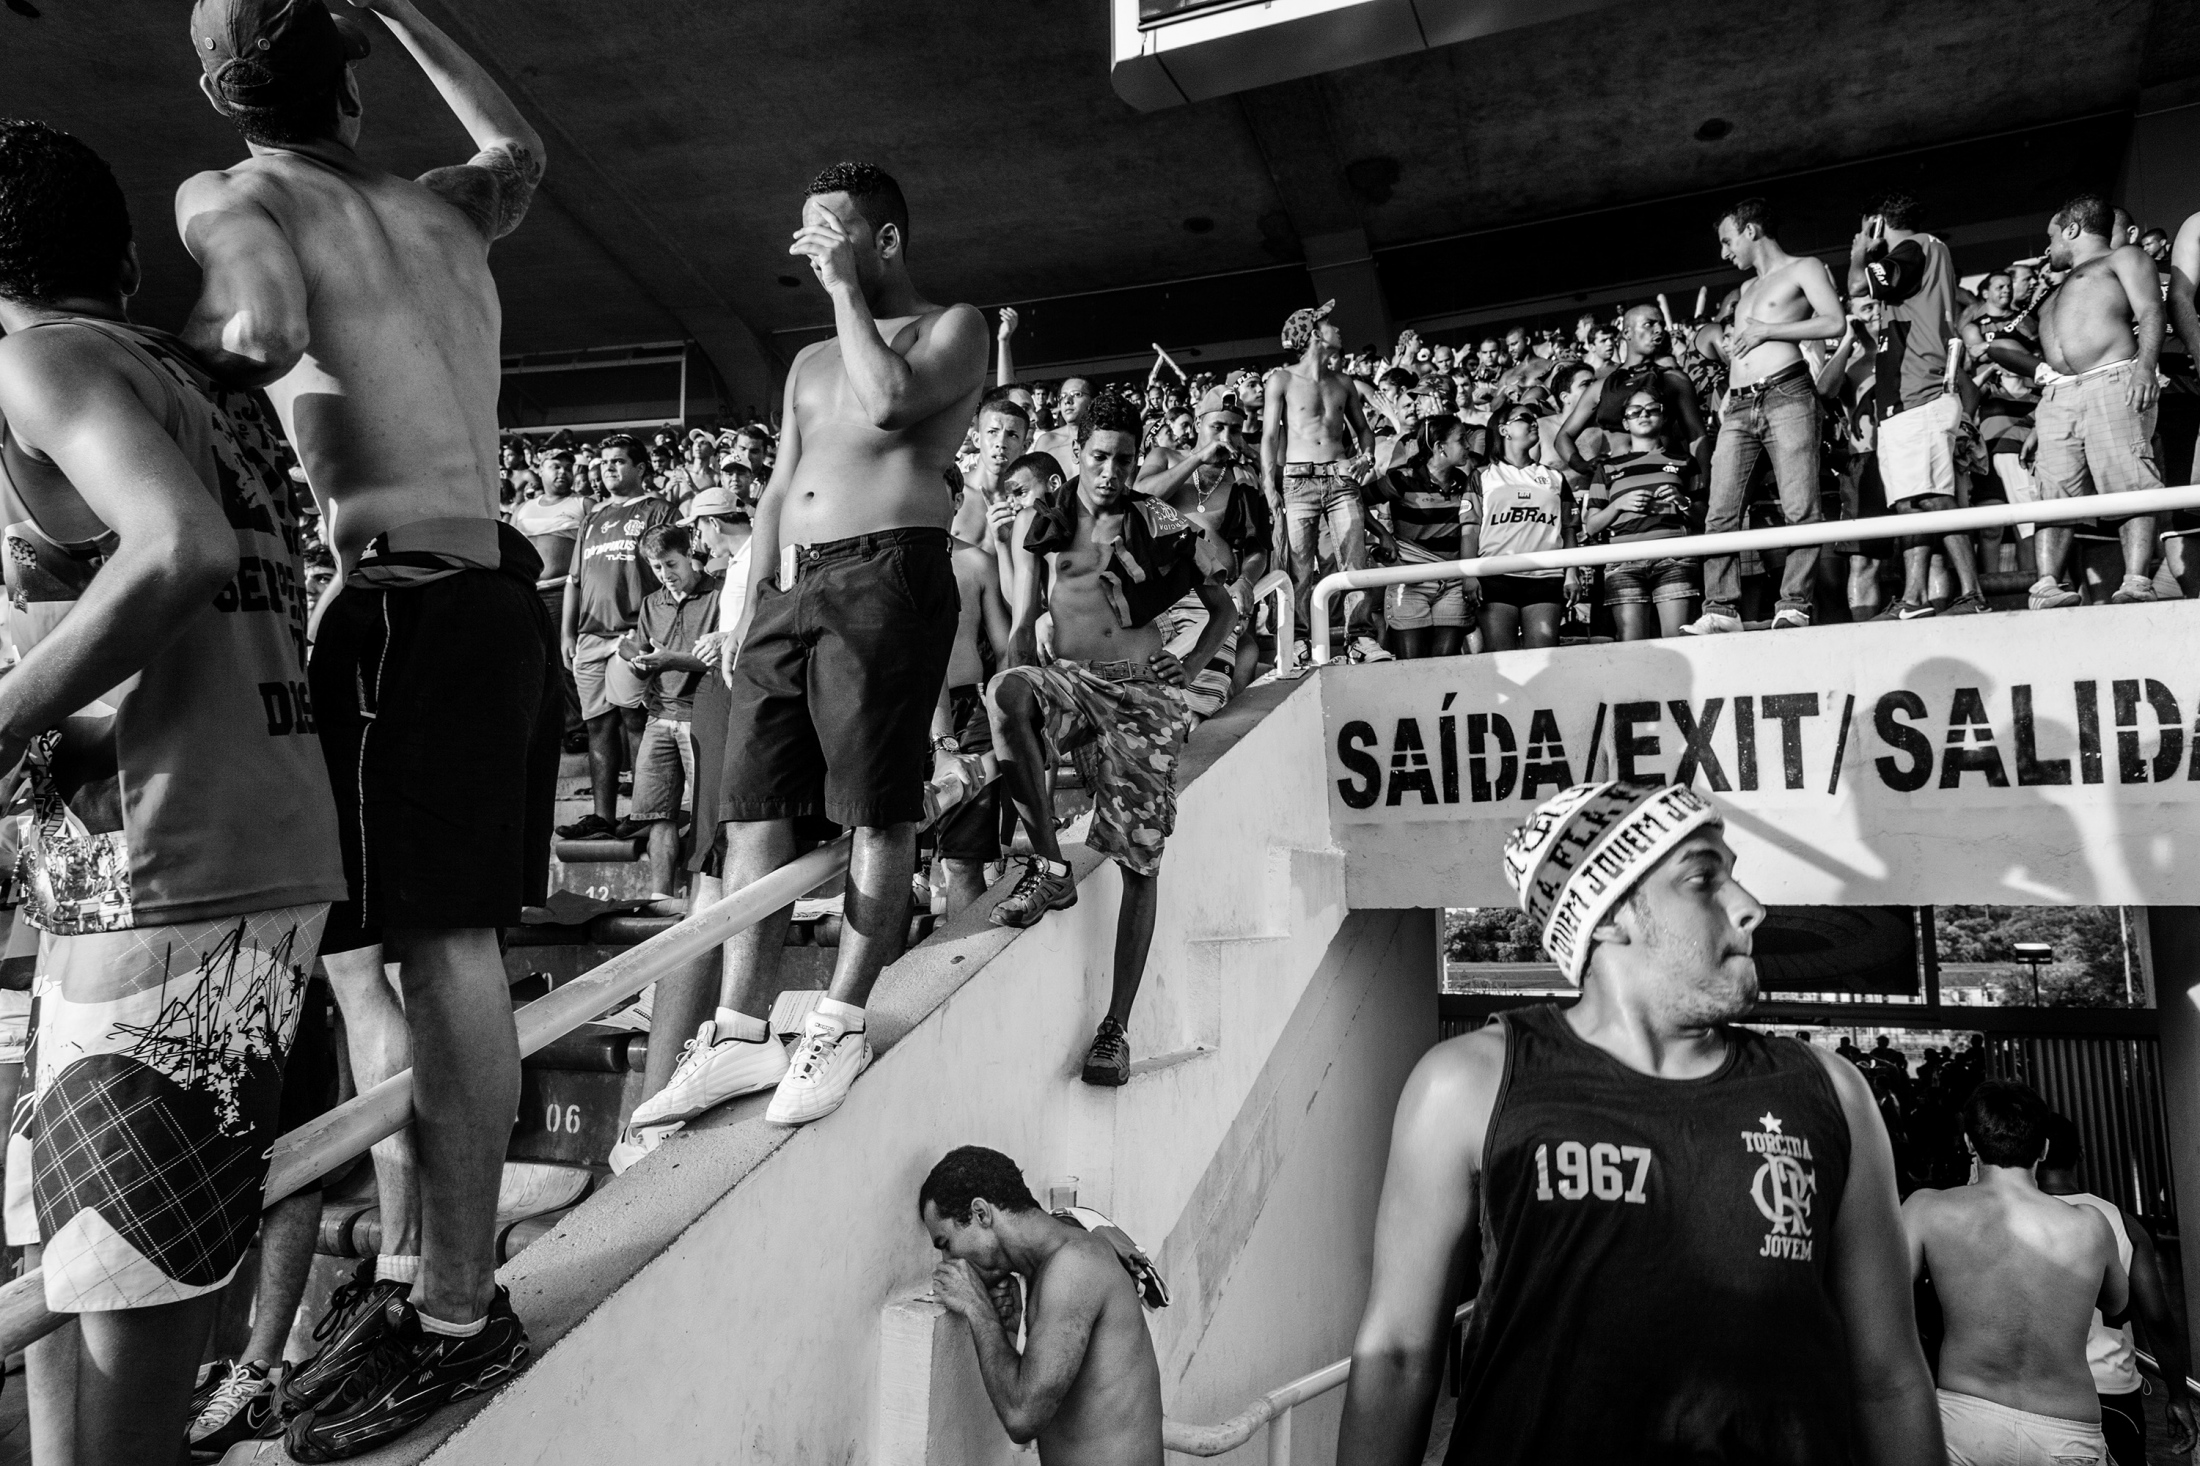 A man snorts cocaine beside the stands in the Maracanã stadium, during a soccer match between Flamengo and Goiás. November 2009.